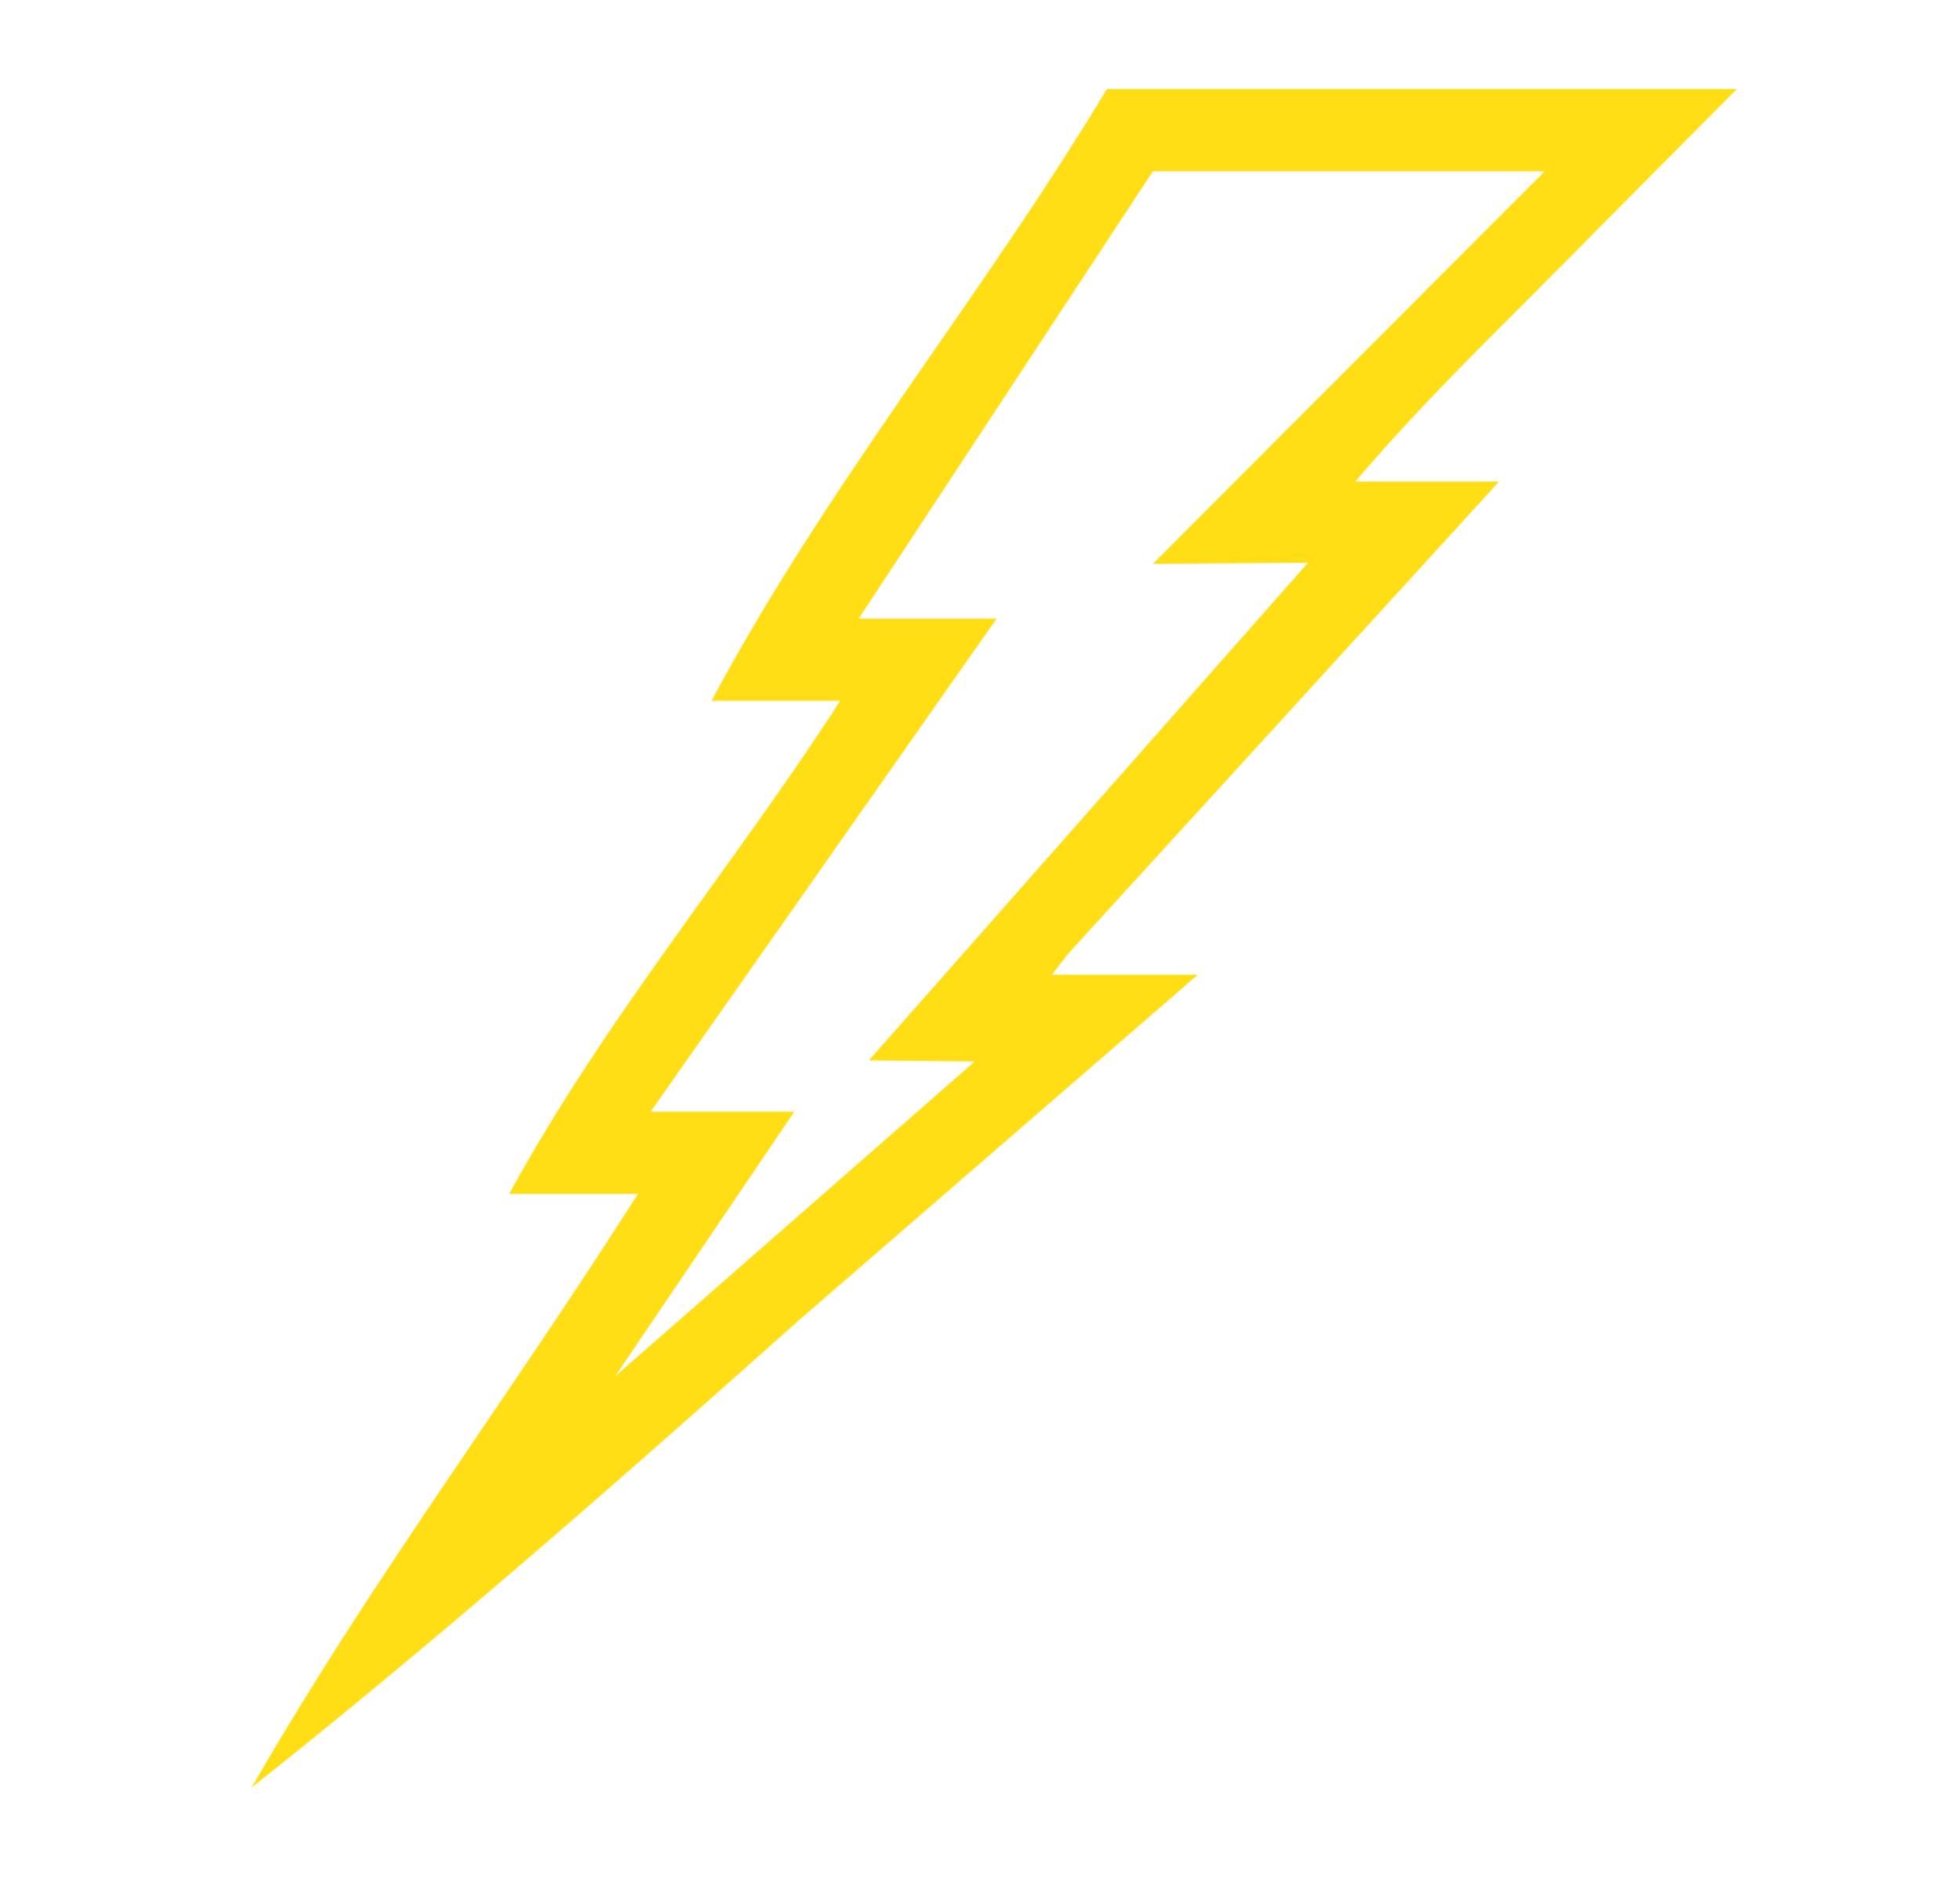 Png lighting bolt transparent. Lightning clipart lightning shock